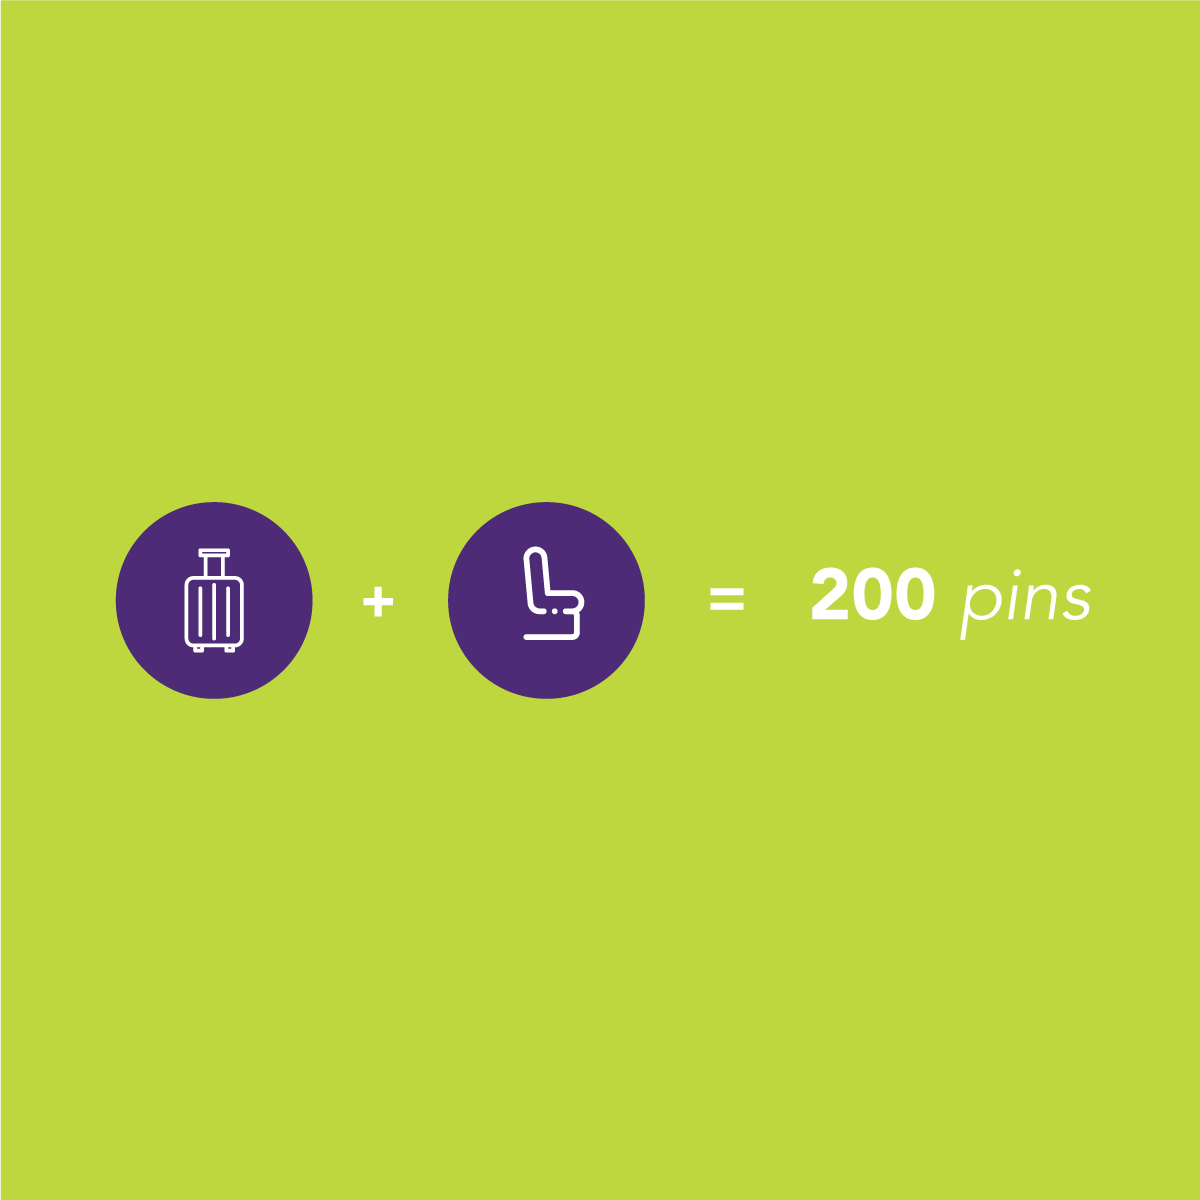 Add comfort to your trip and earn up to 200 pins!